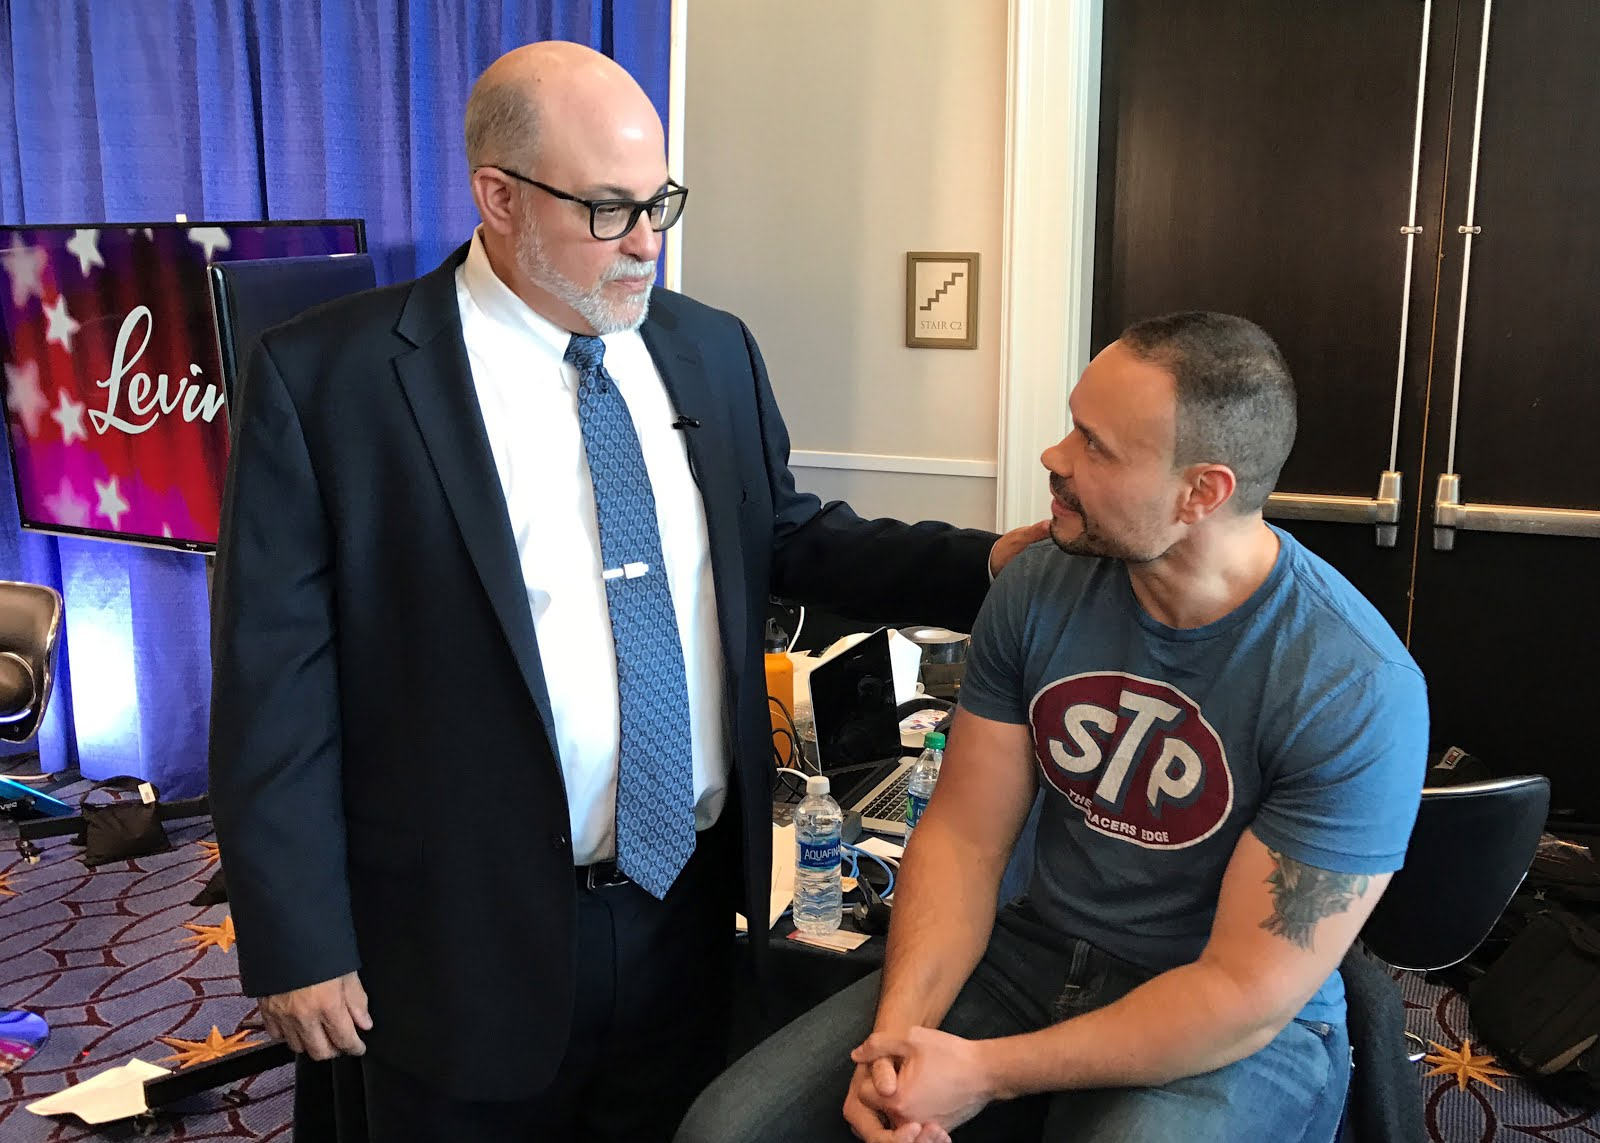 Right Bull writer Andy Cruz meeting a hero Mark Levin